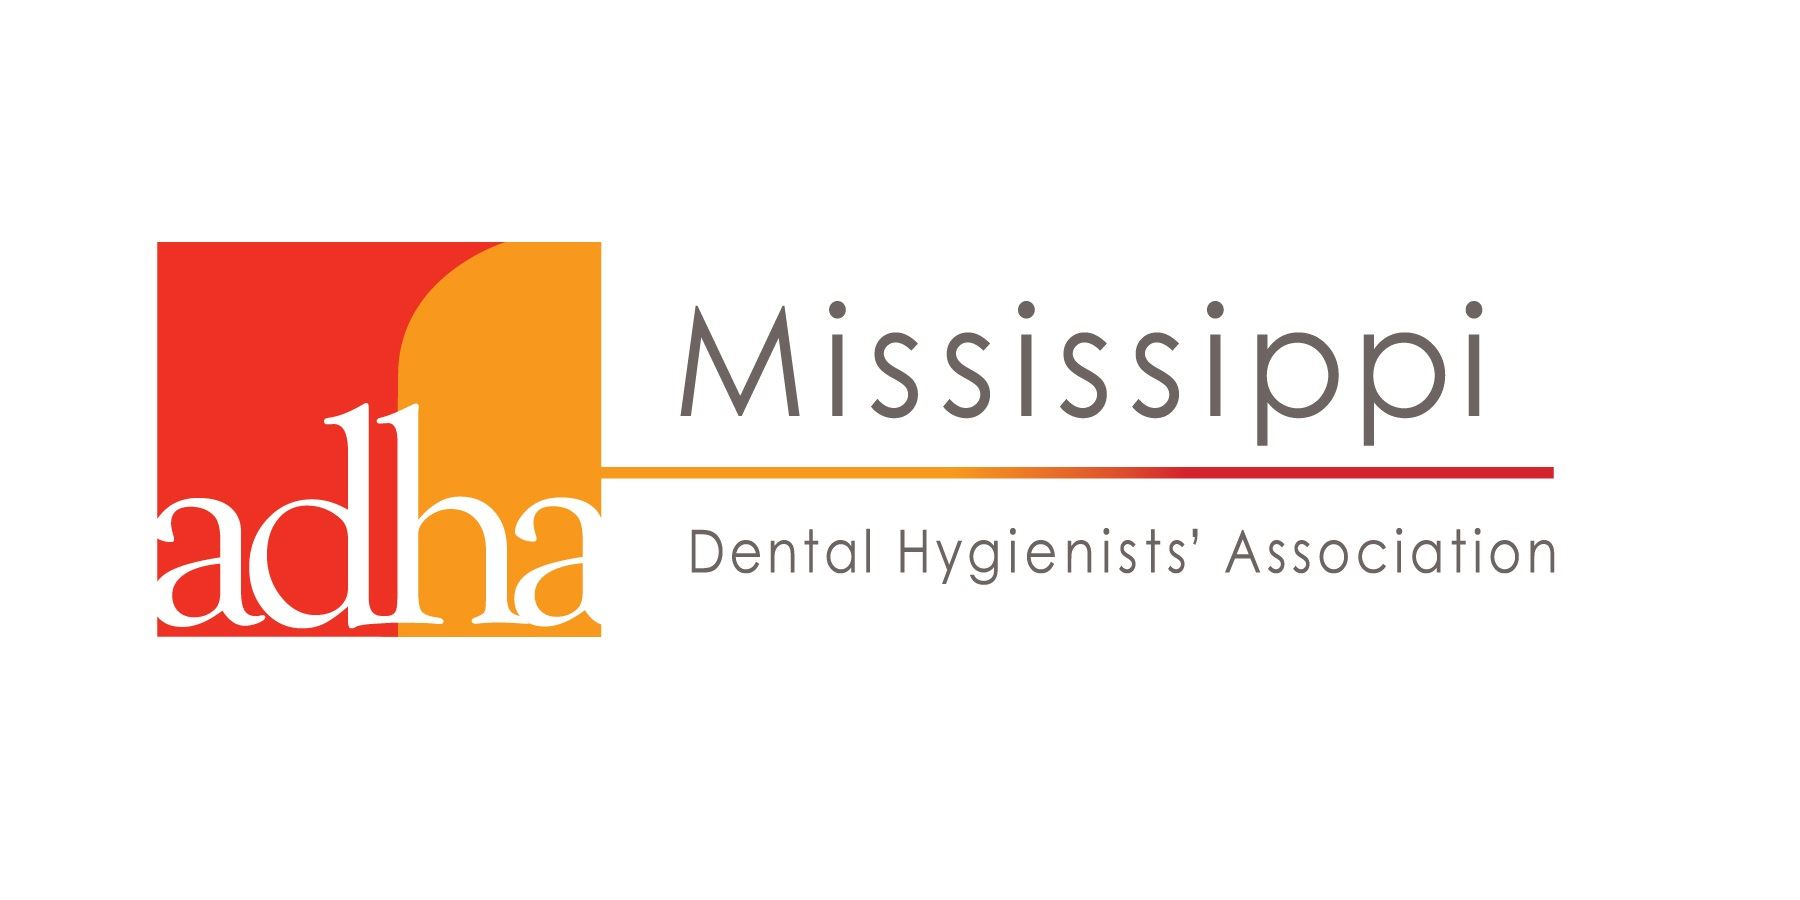 Mississippi Dental Hygienists' Association